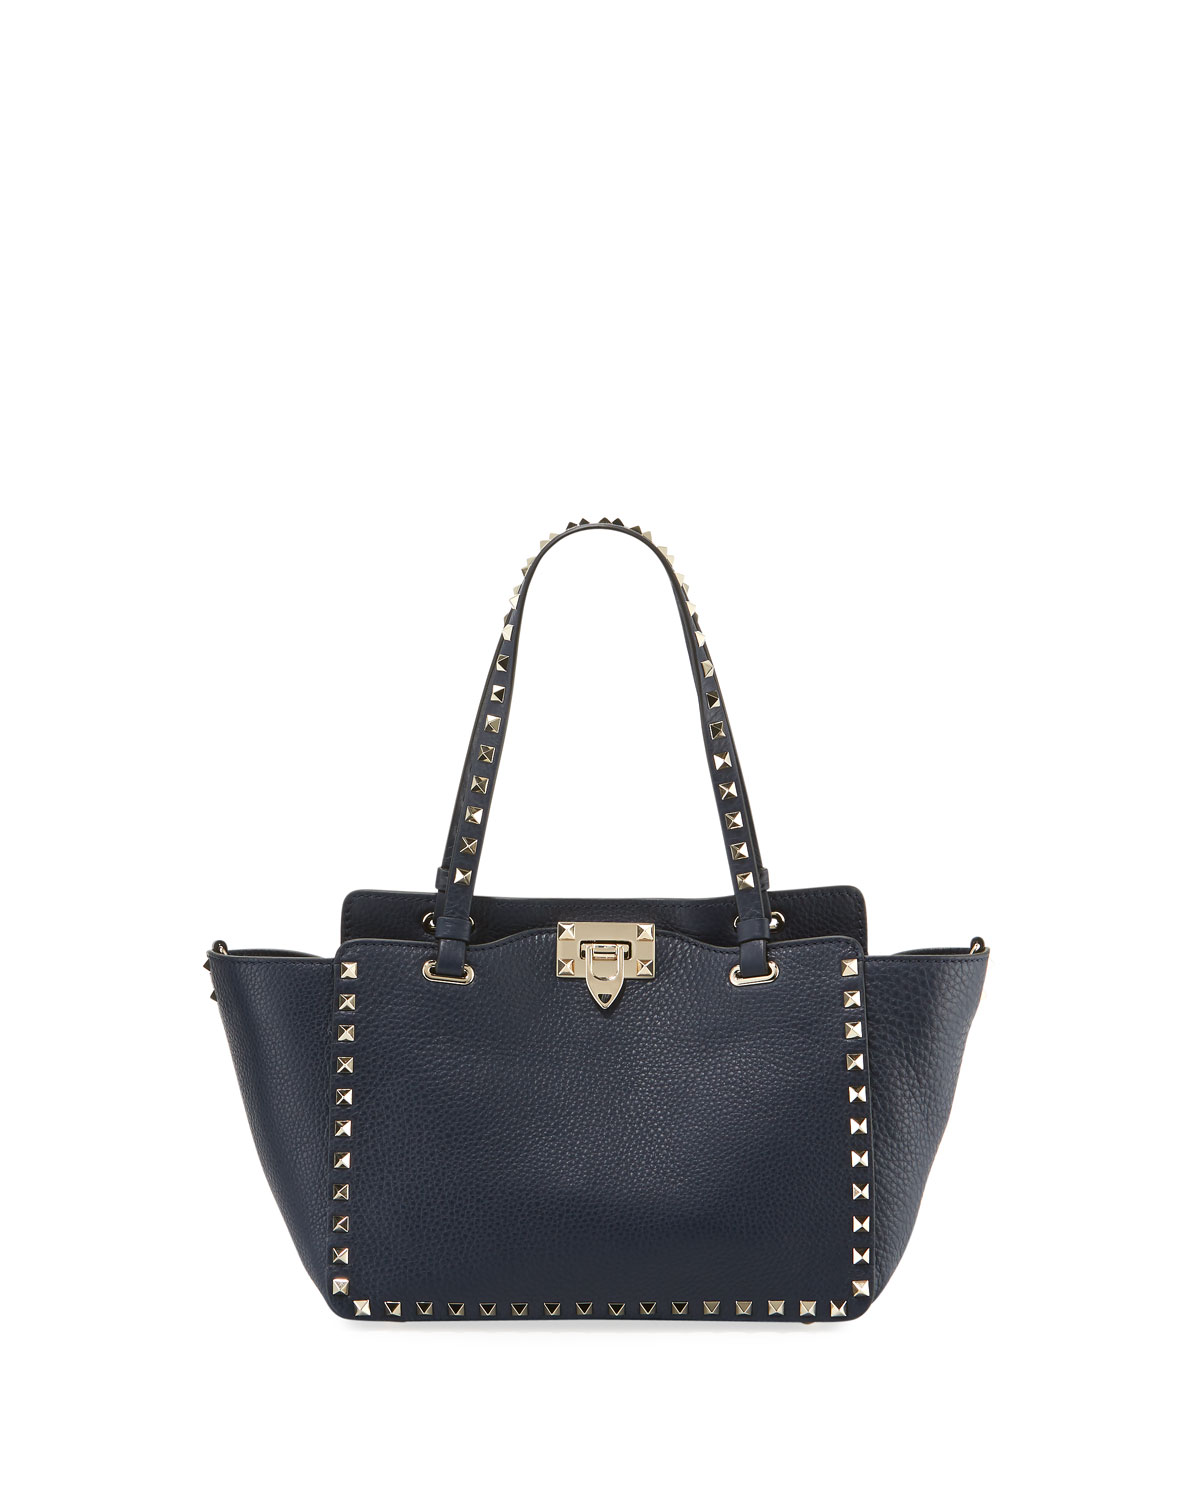 d9346d90113 Valentino Garavani Rockstud Medium Leather Tote Bag